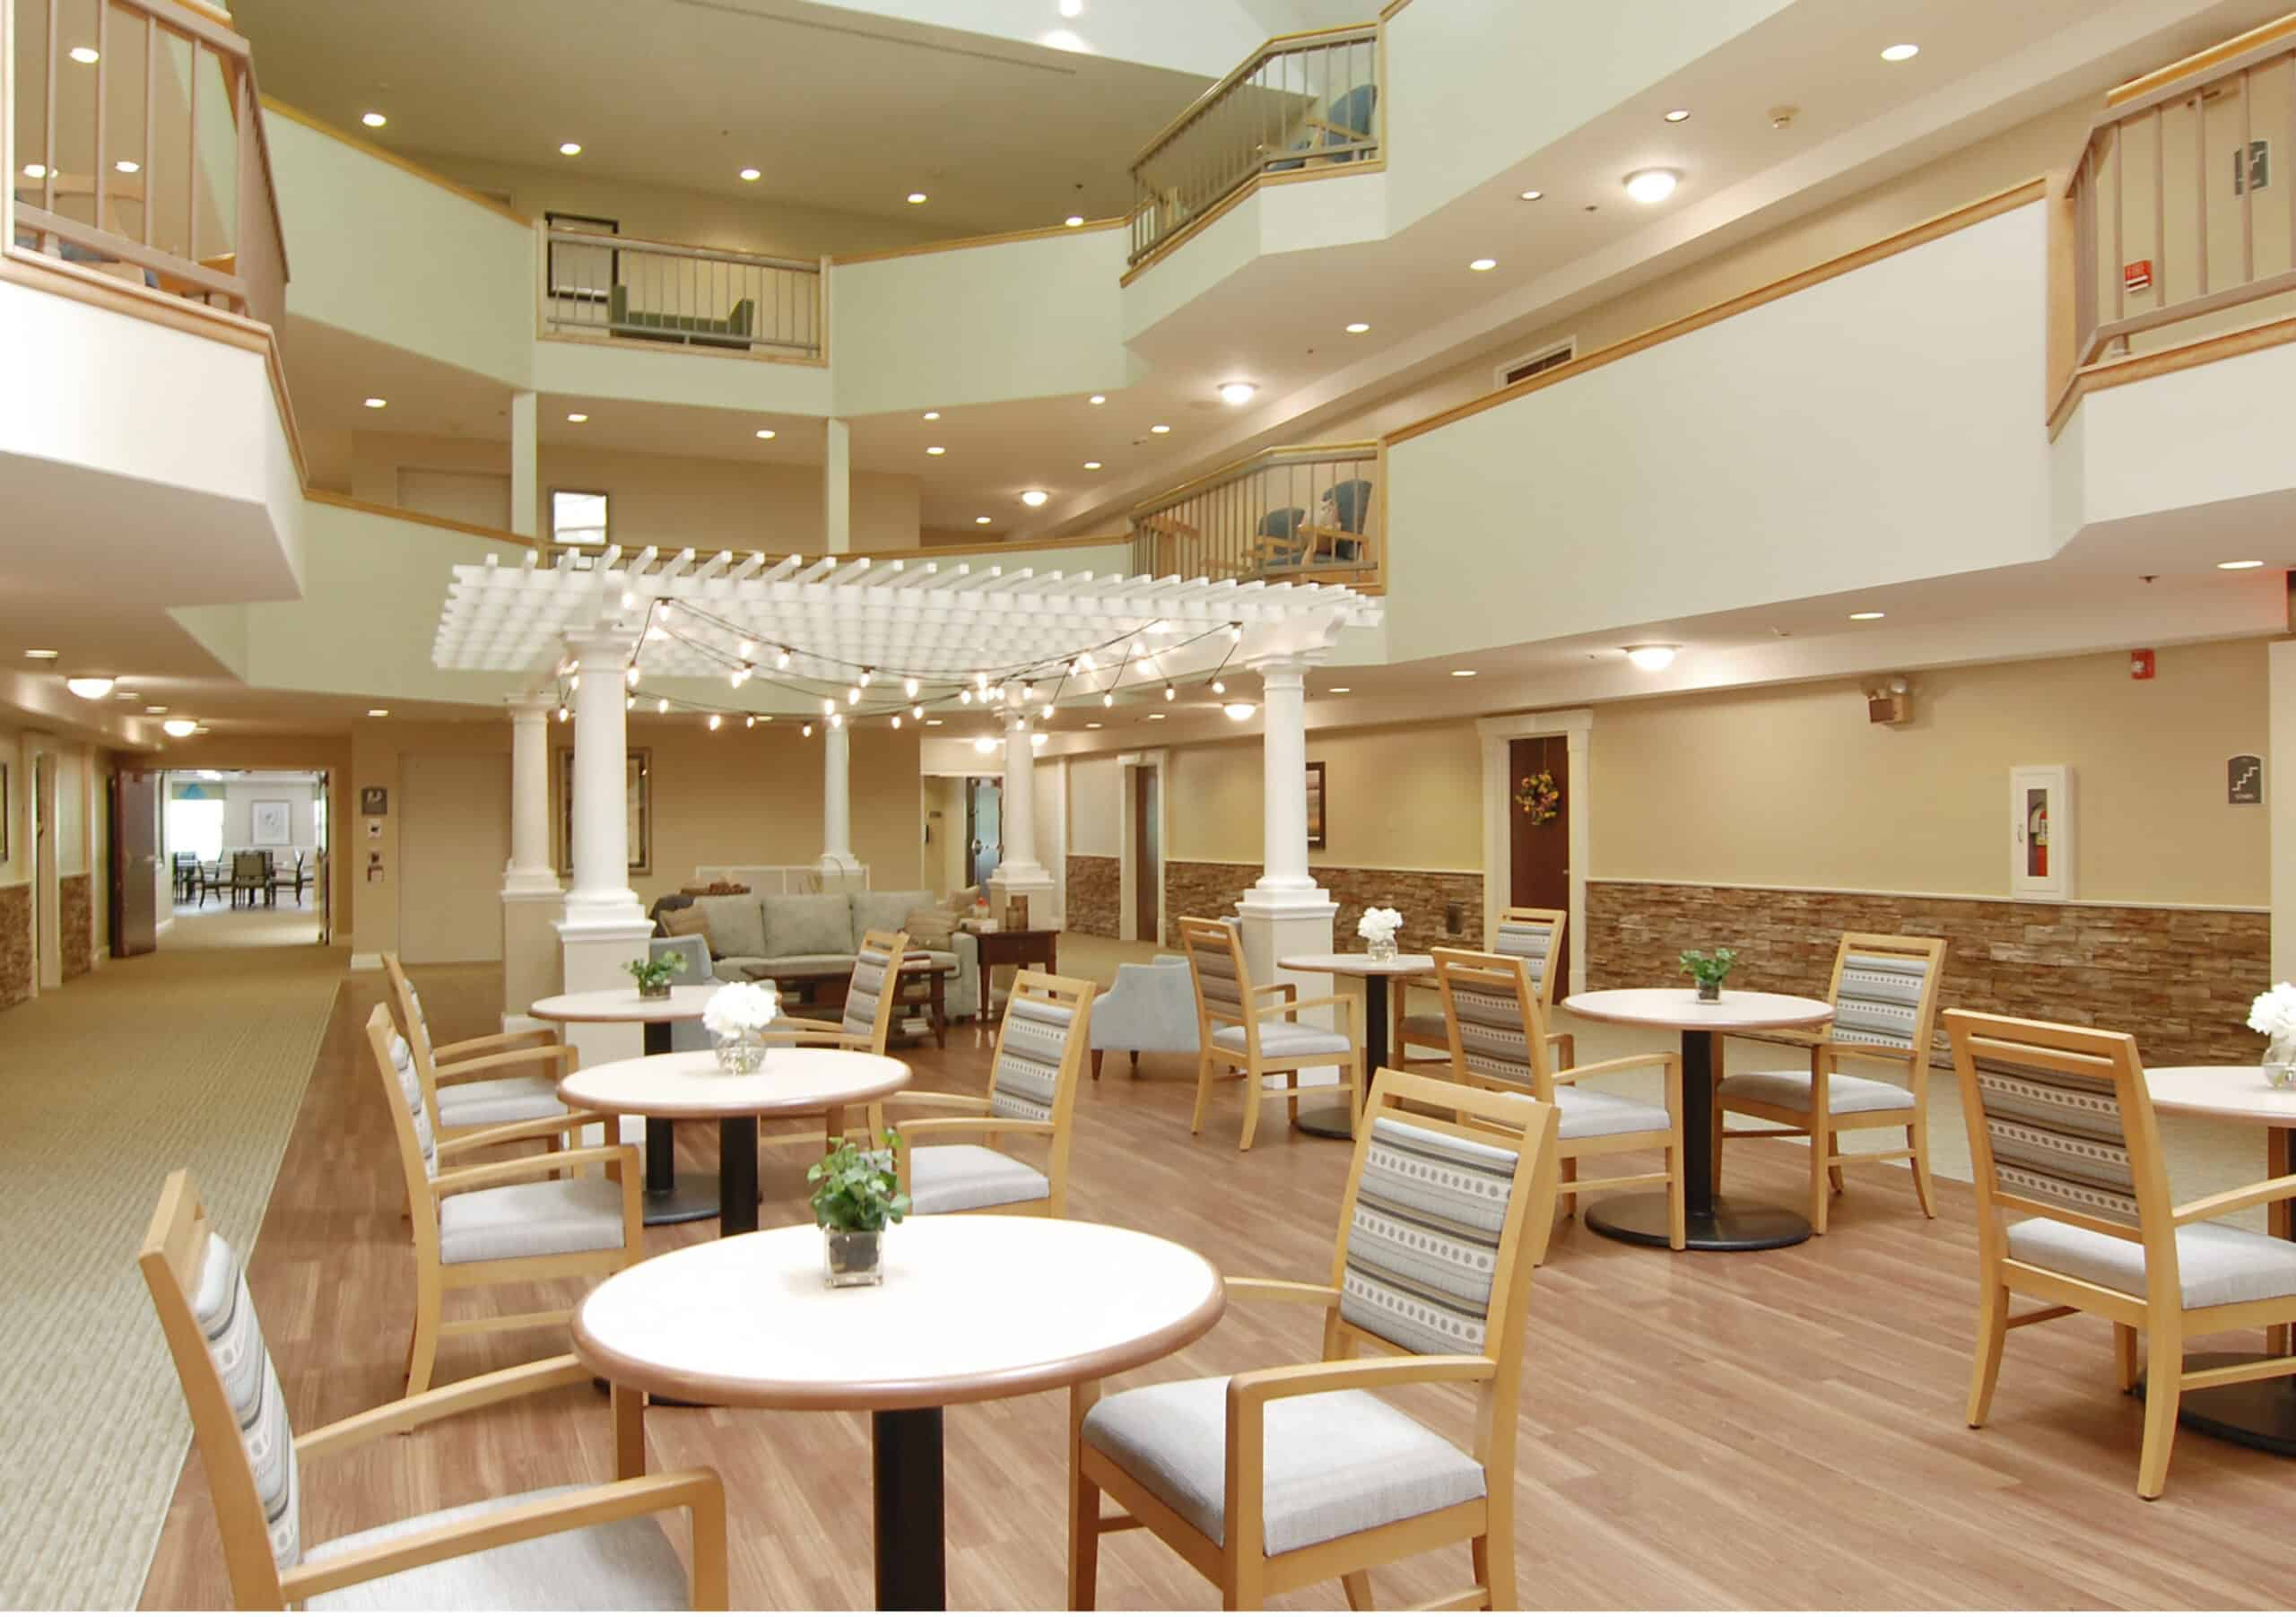 Three story atrium with in-door gazebo and plenty of seating for residents to socialize.